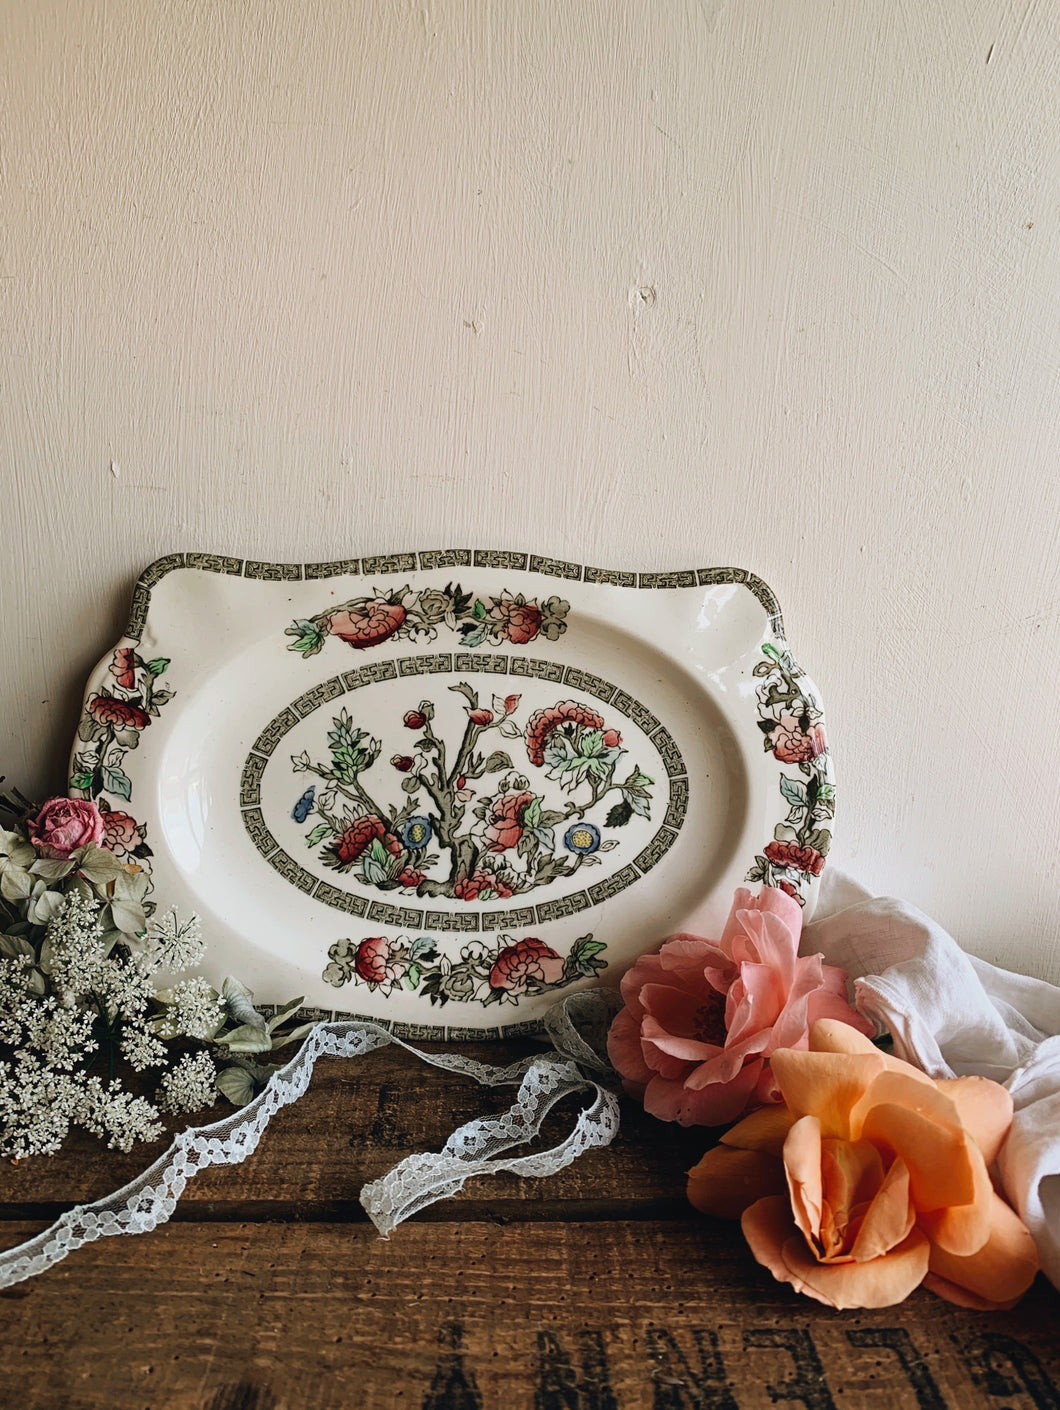 Vintage Johnson & Bro's Decorative Platter